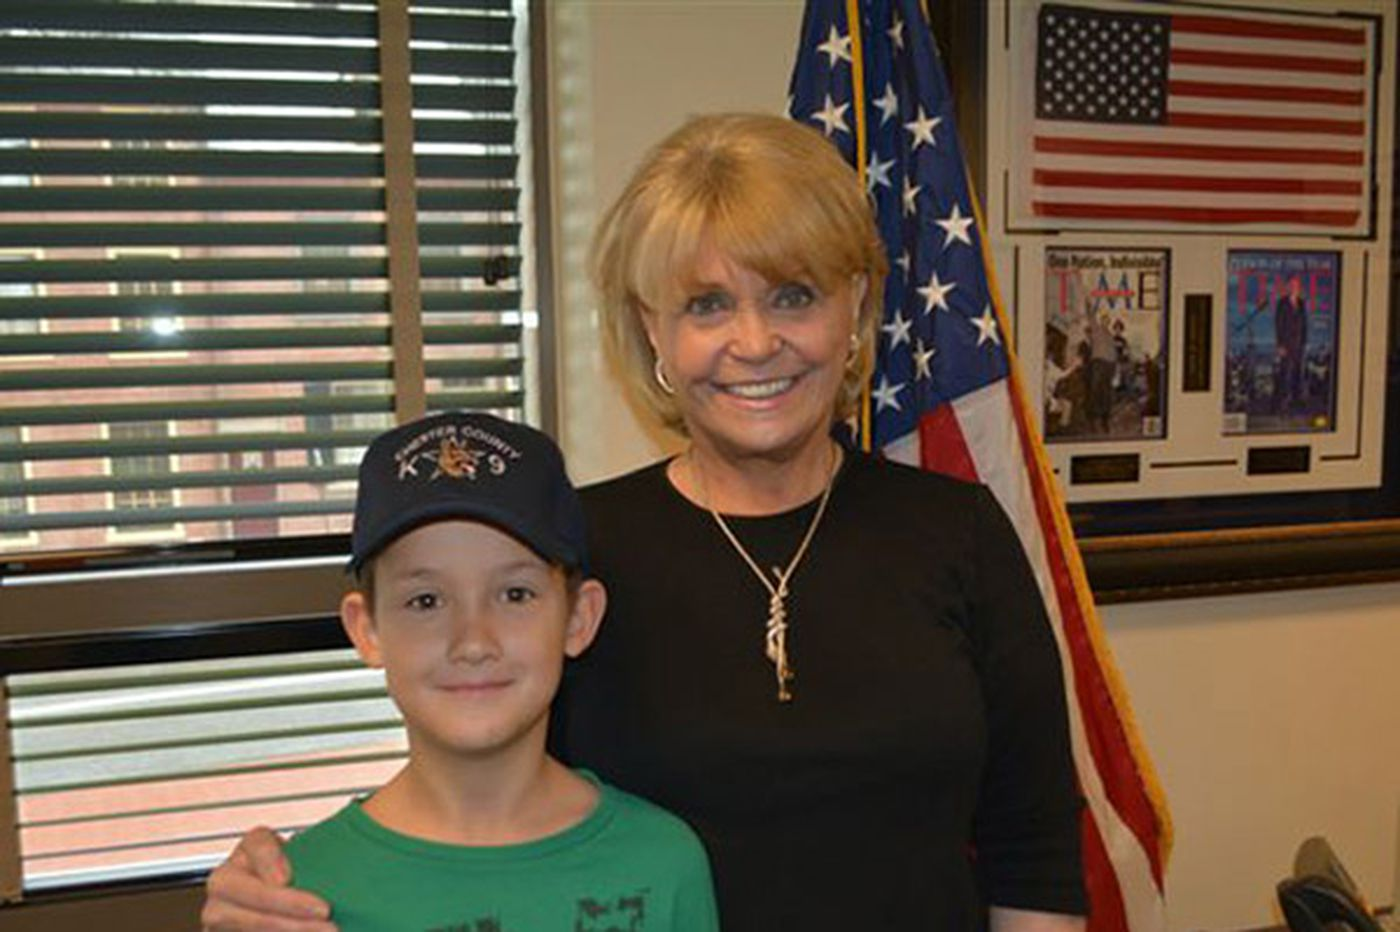 Boy's mix-up of Chester County sheriffs ends in happy trip to S.C.